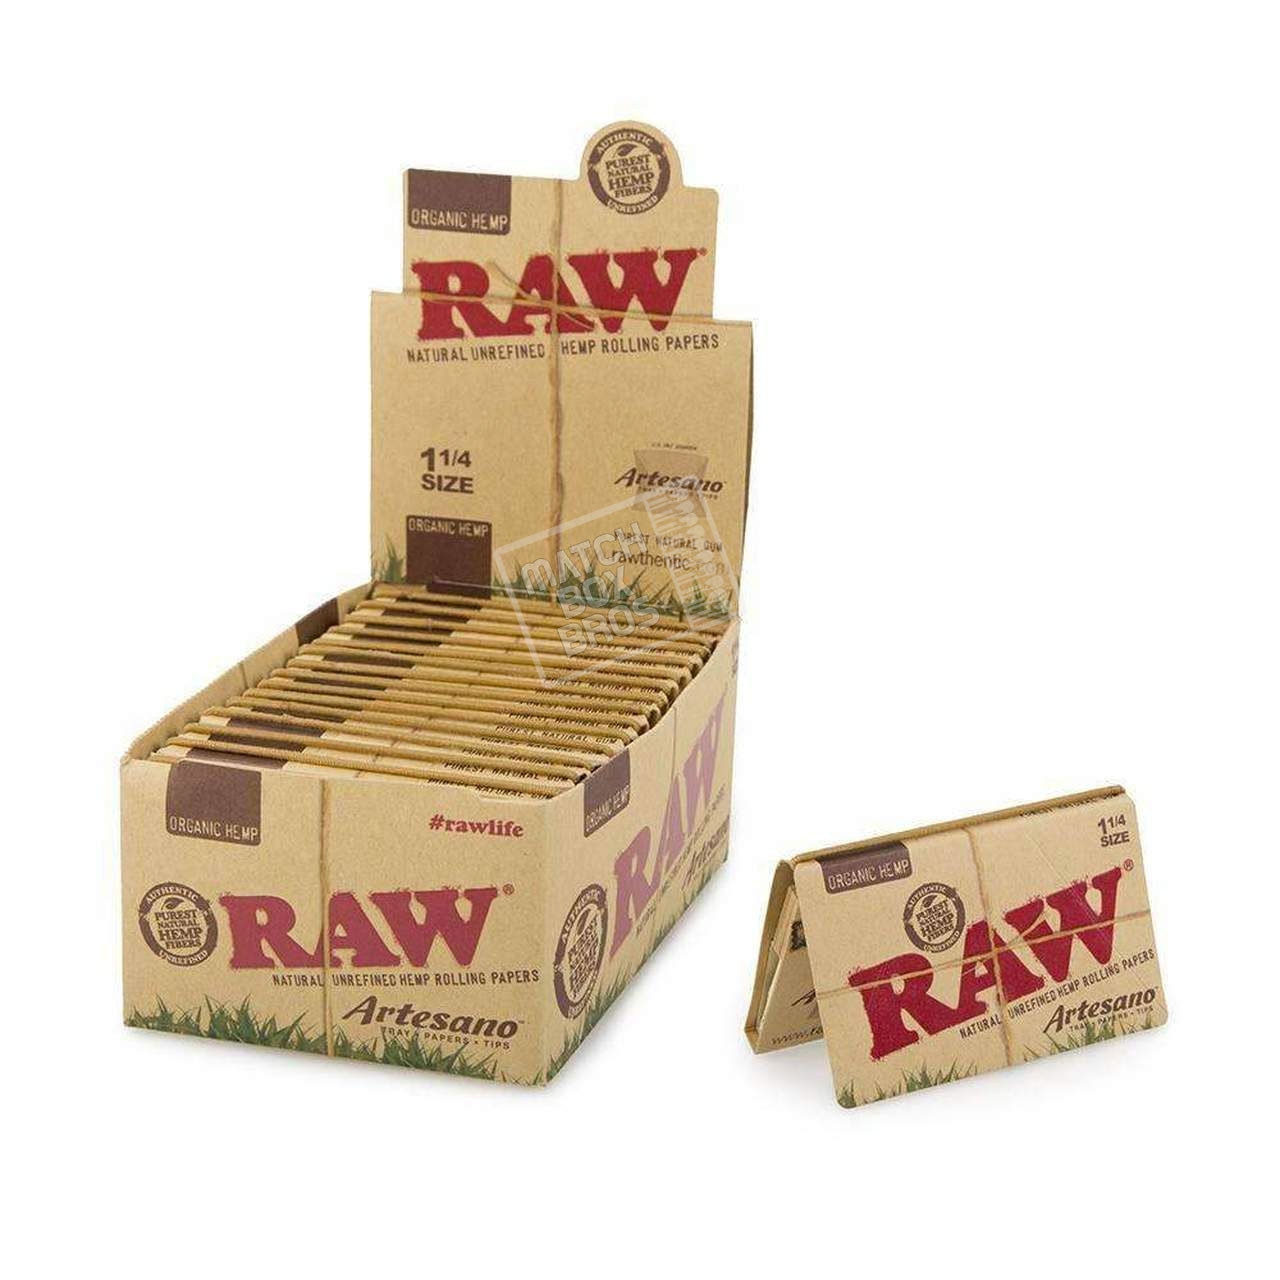 RAW Organic Hemp Artesano 1 1/4 Rolling Paper Open Box